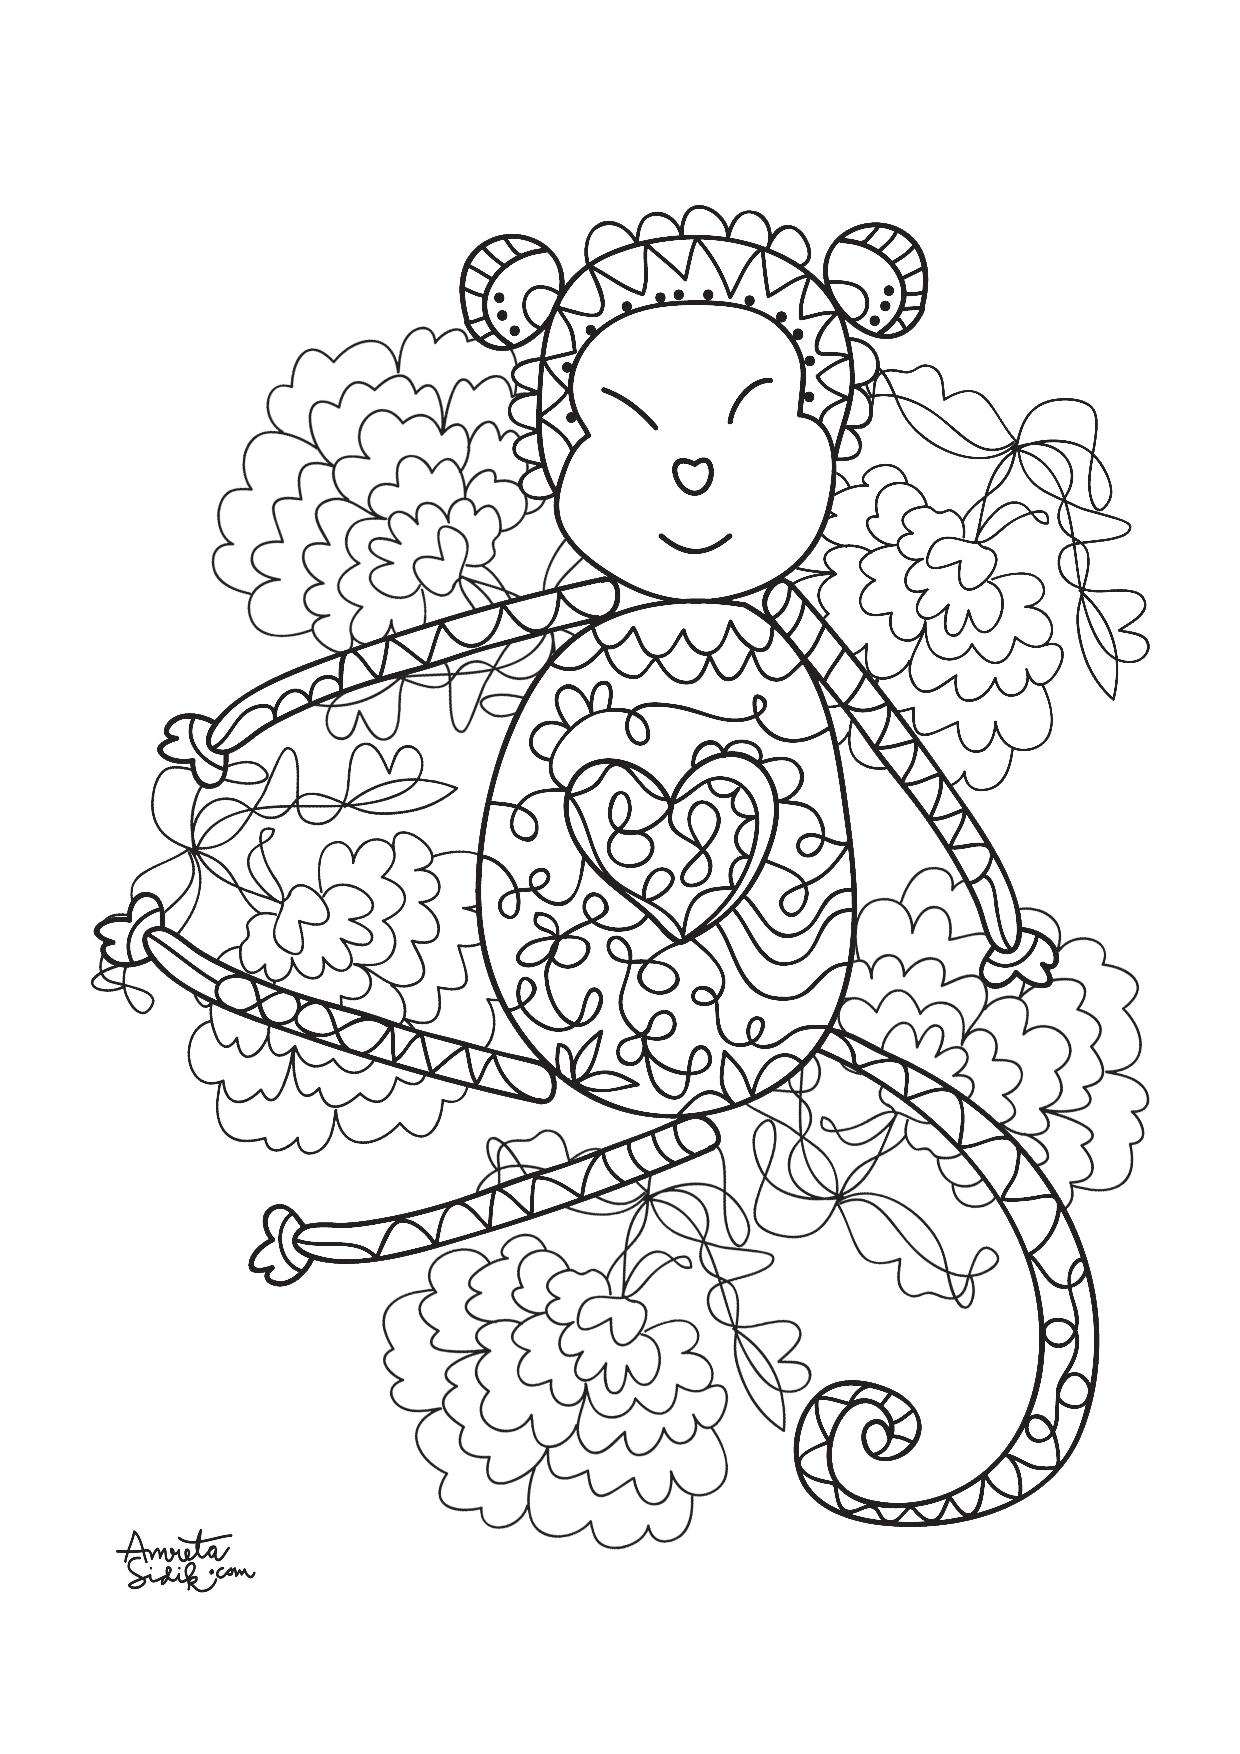 printables coloring pages for adults - photo#29